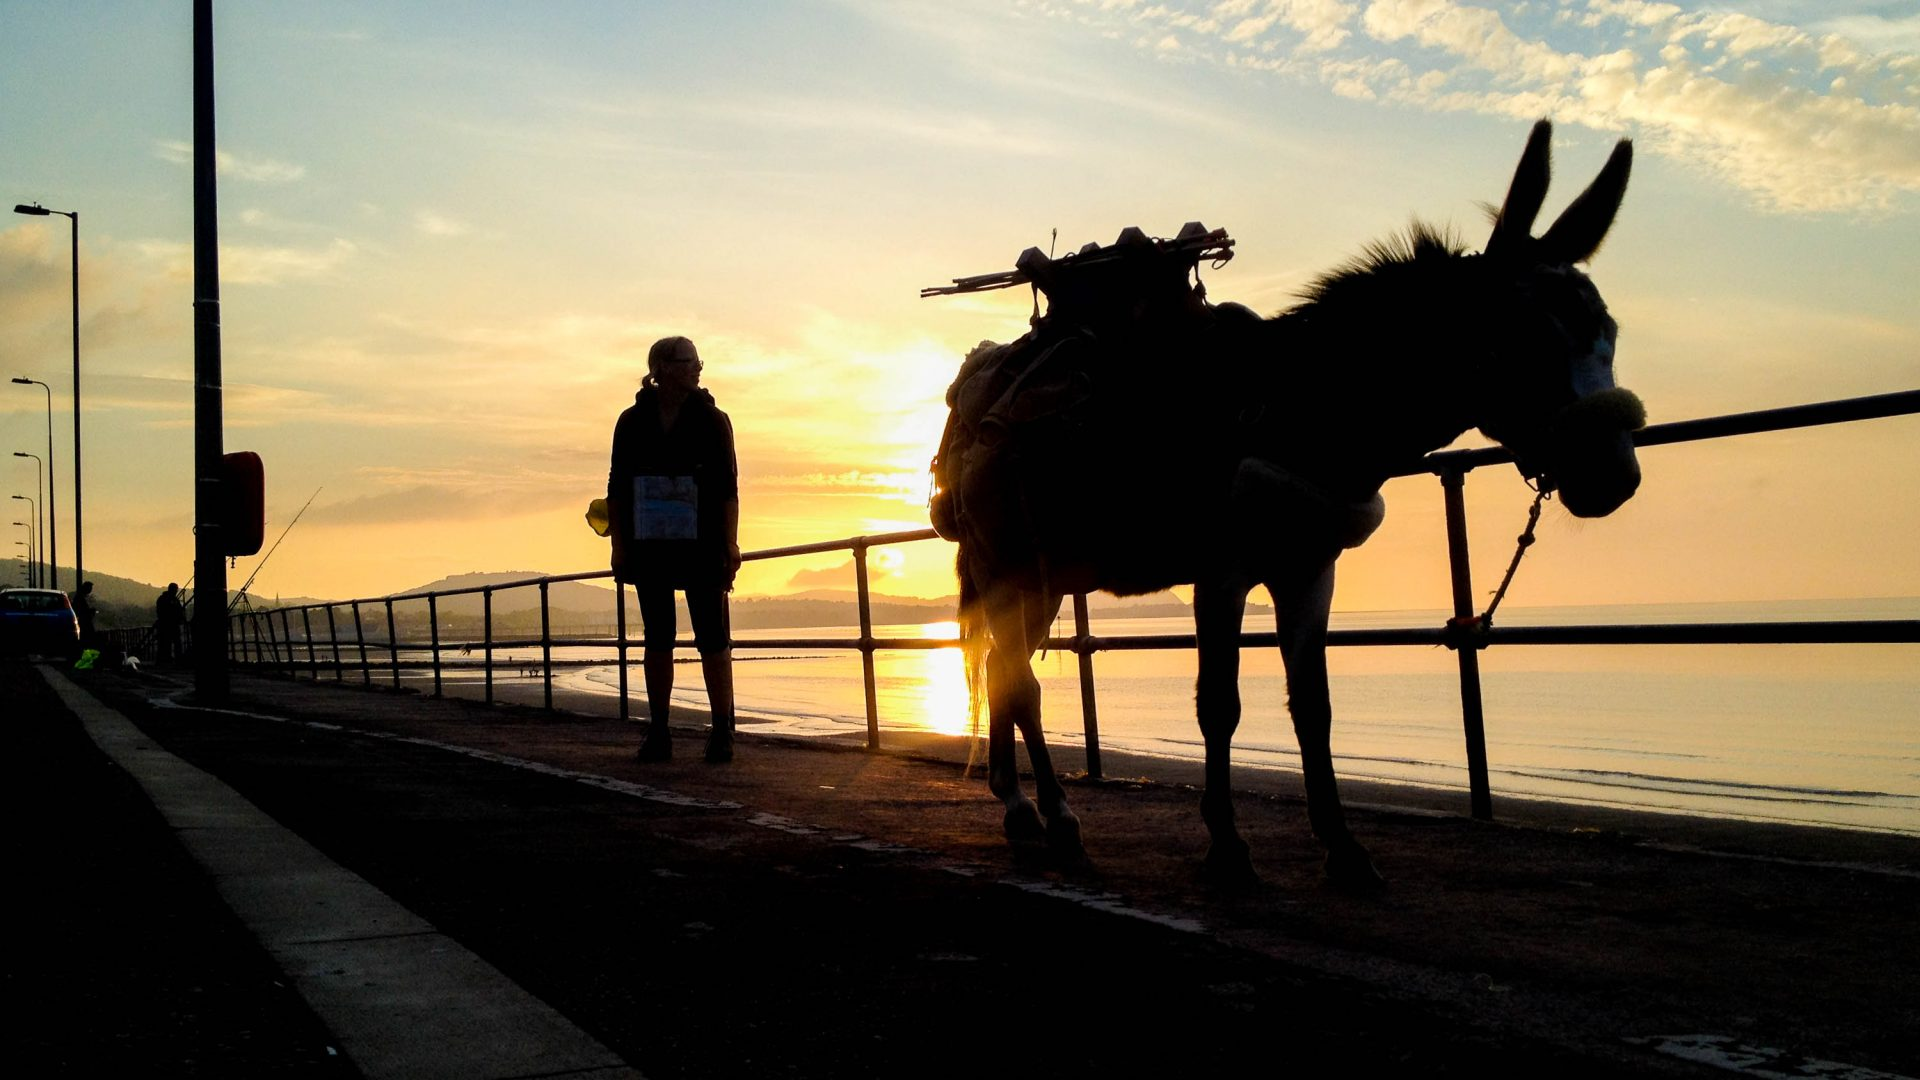 Hannah Engelkamp and her donkey Chico silhouetted against the sky.